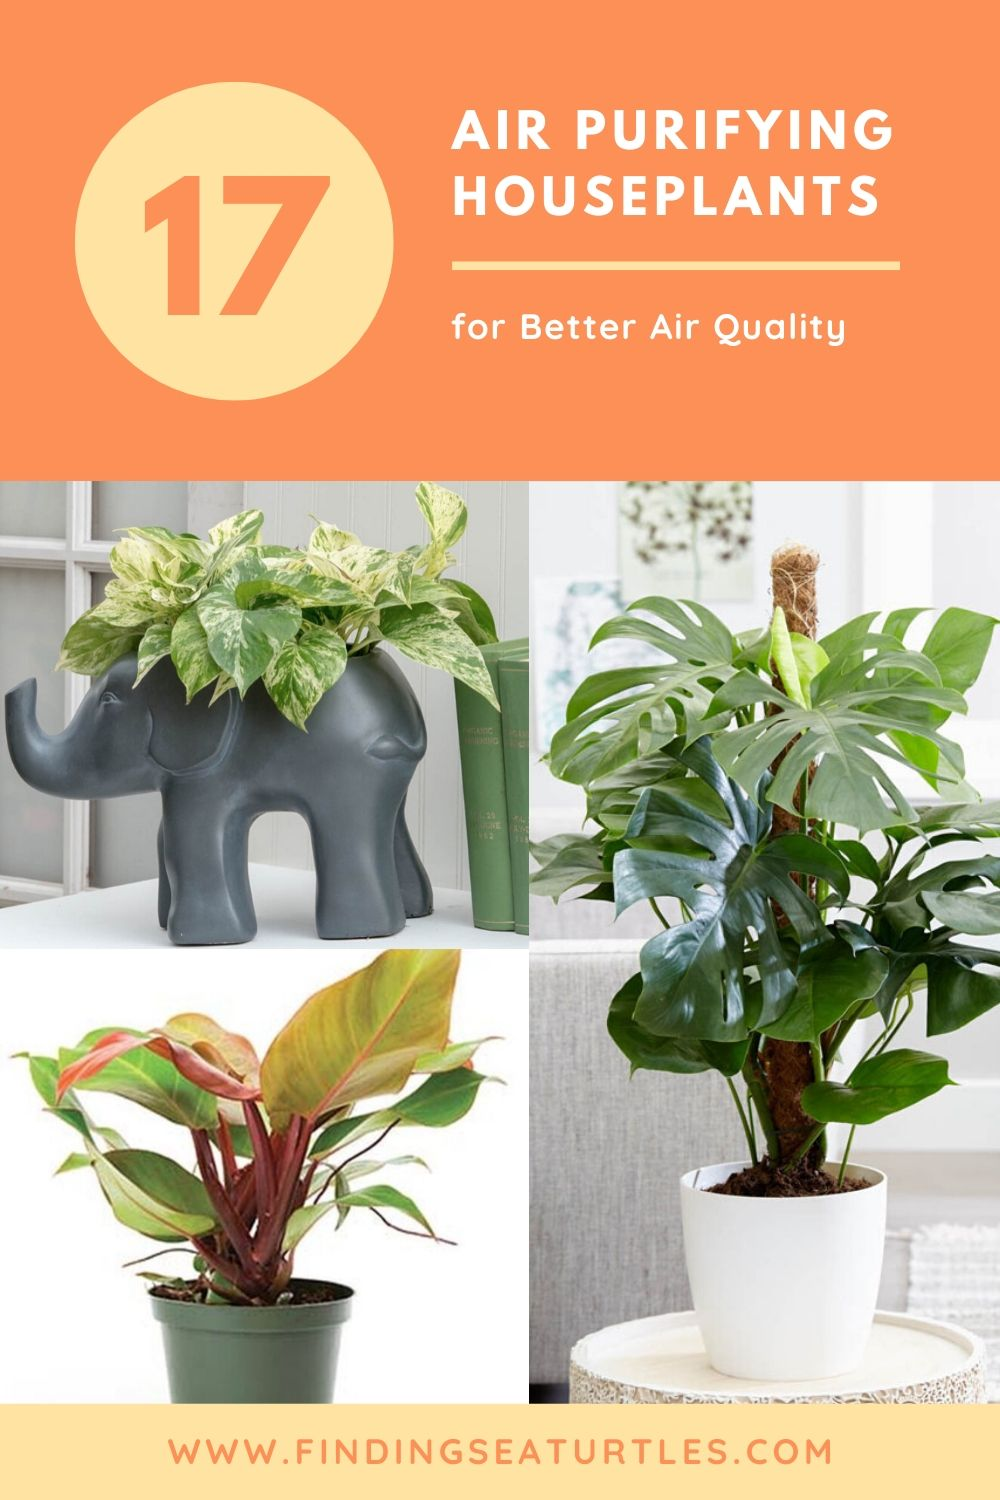 17 AIR Purifying Houseplants for Better Air Quality #HousePlants #AirCleaningPlants #AirPurifyingPlants #AirPurifyingHousePlants #IndoorPlants #CleanAir